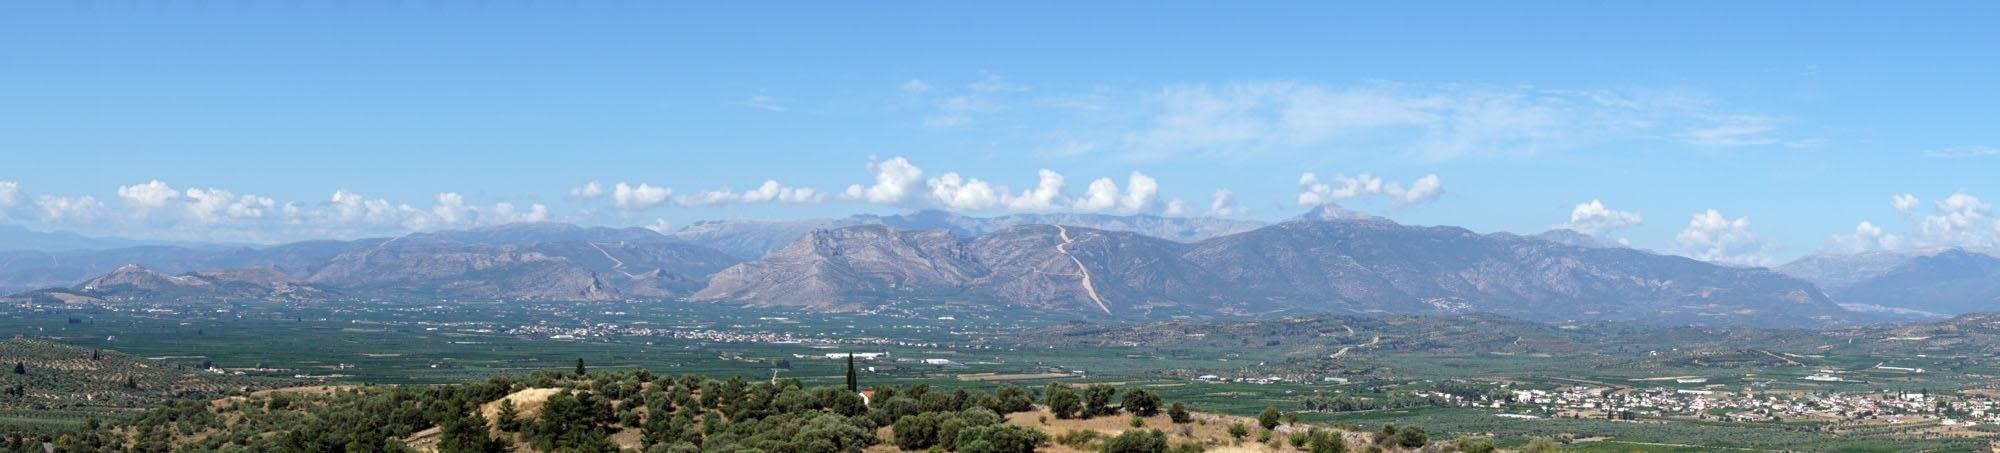 The view from Mycenae